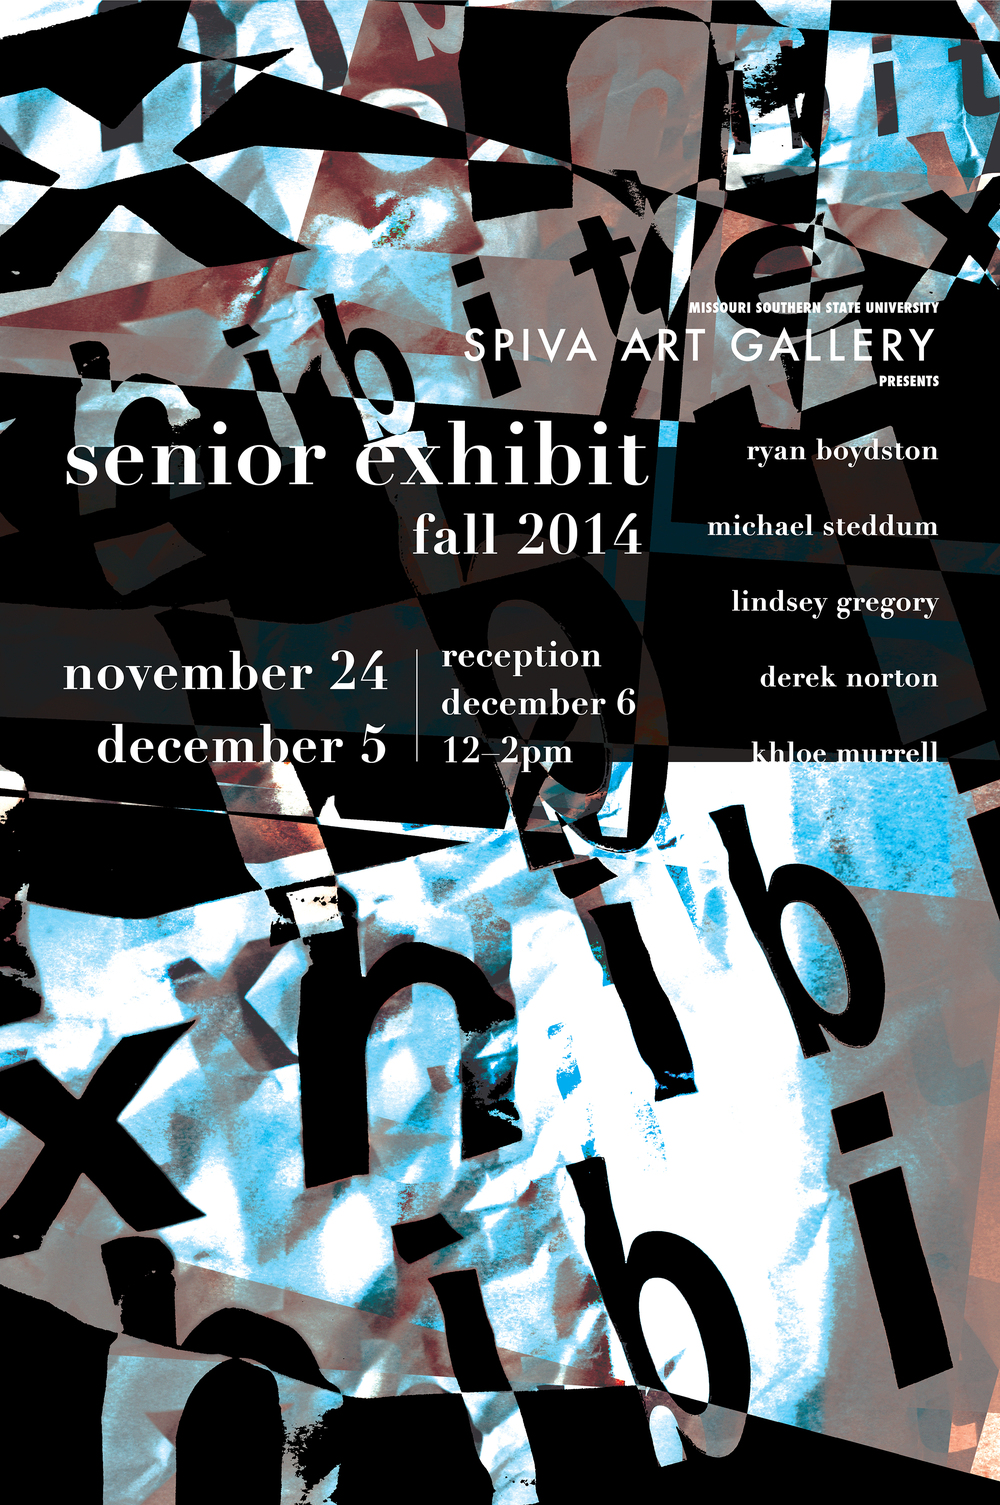 Senior Exhibit Fall 2014